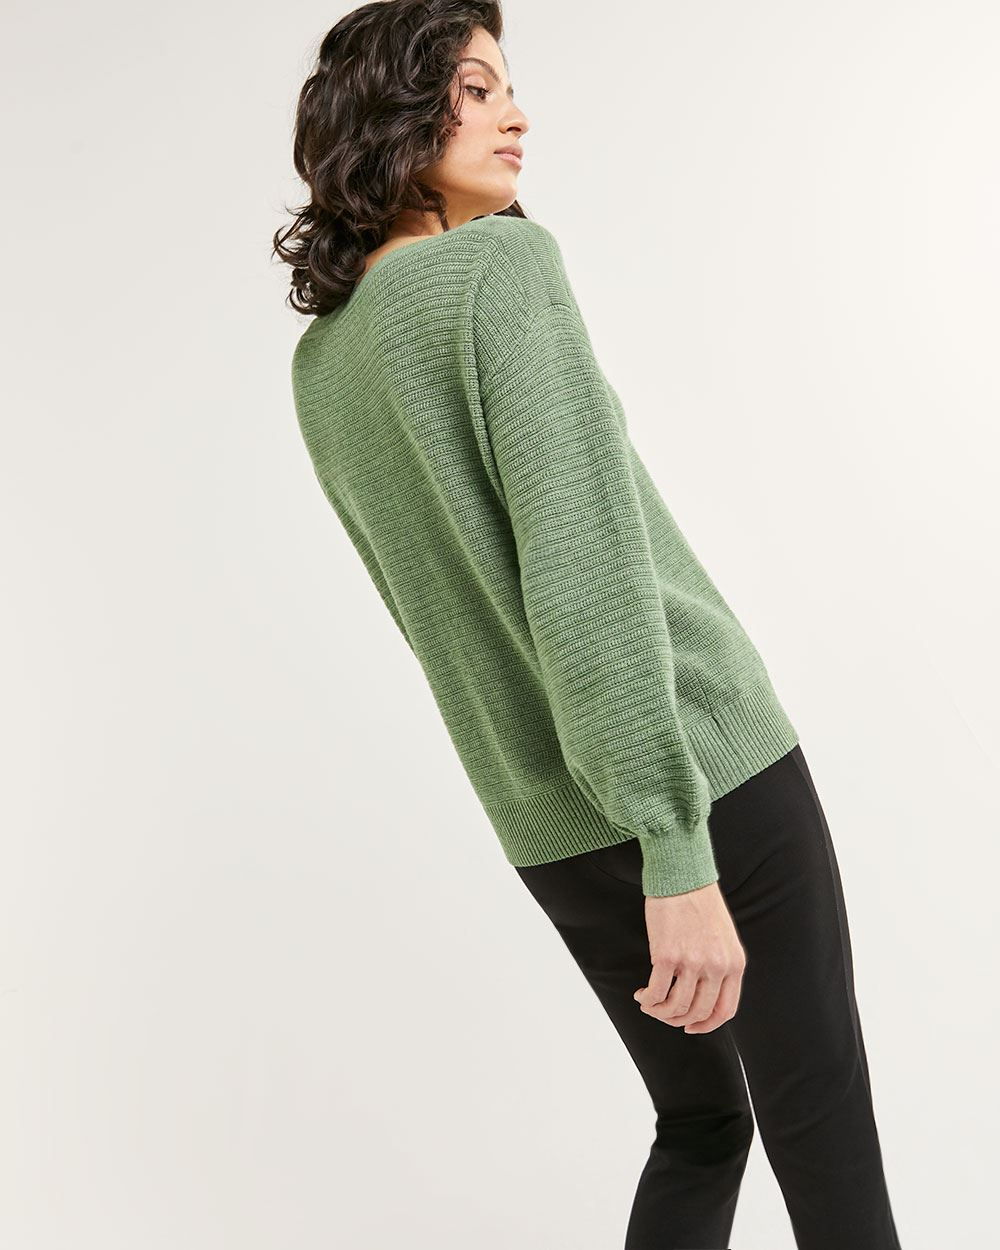 Long Balloon Sleeve Boat Neck Sweater - Petite